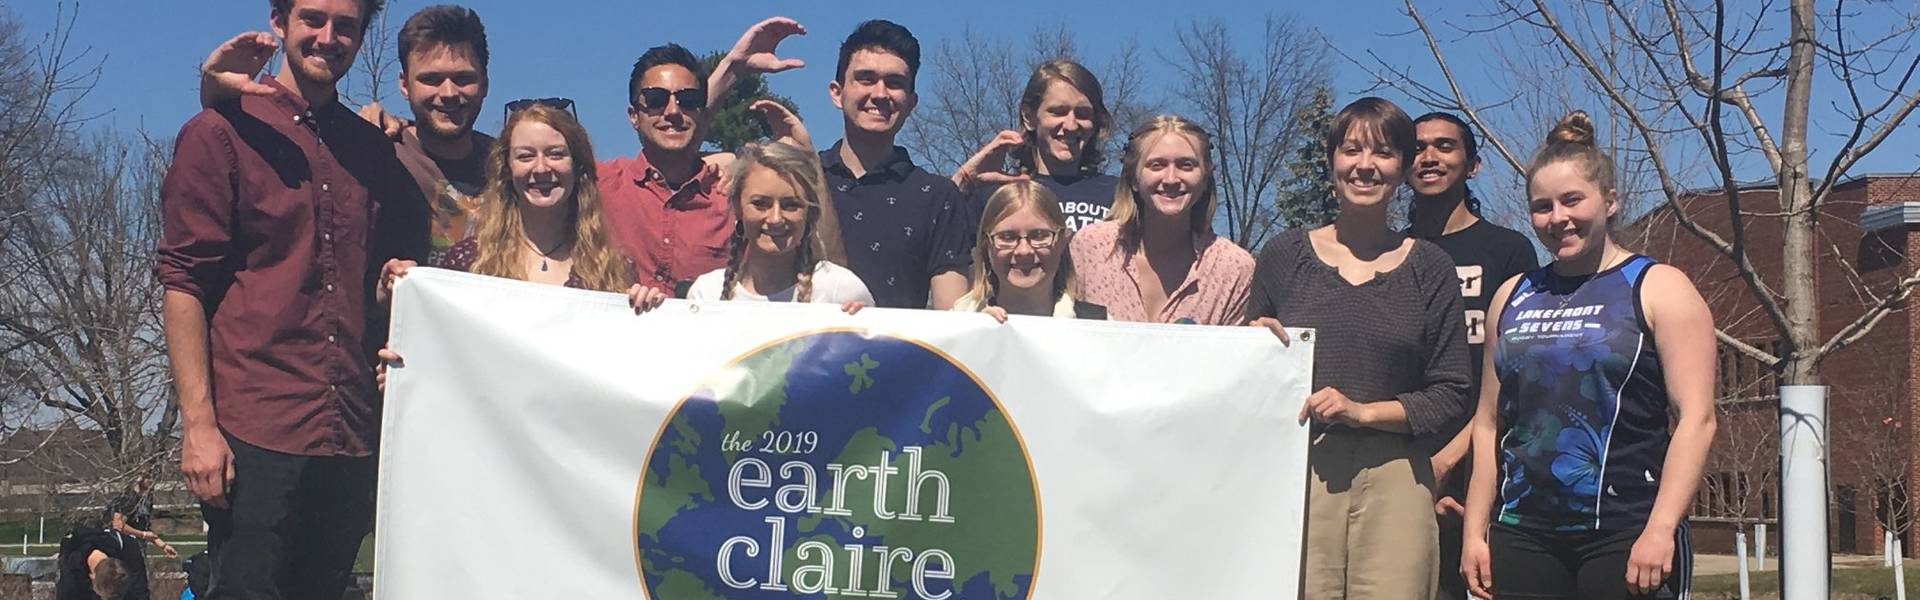 Students holding up a banner for Earth Claire 2019